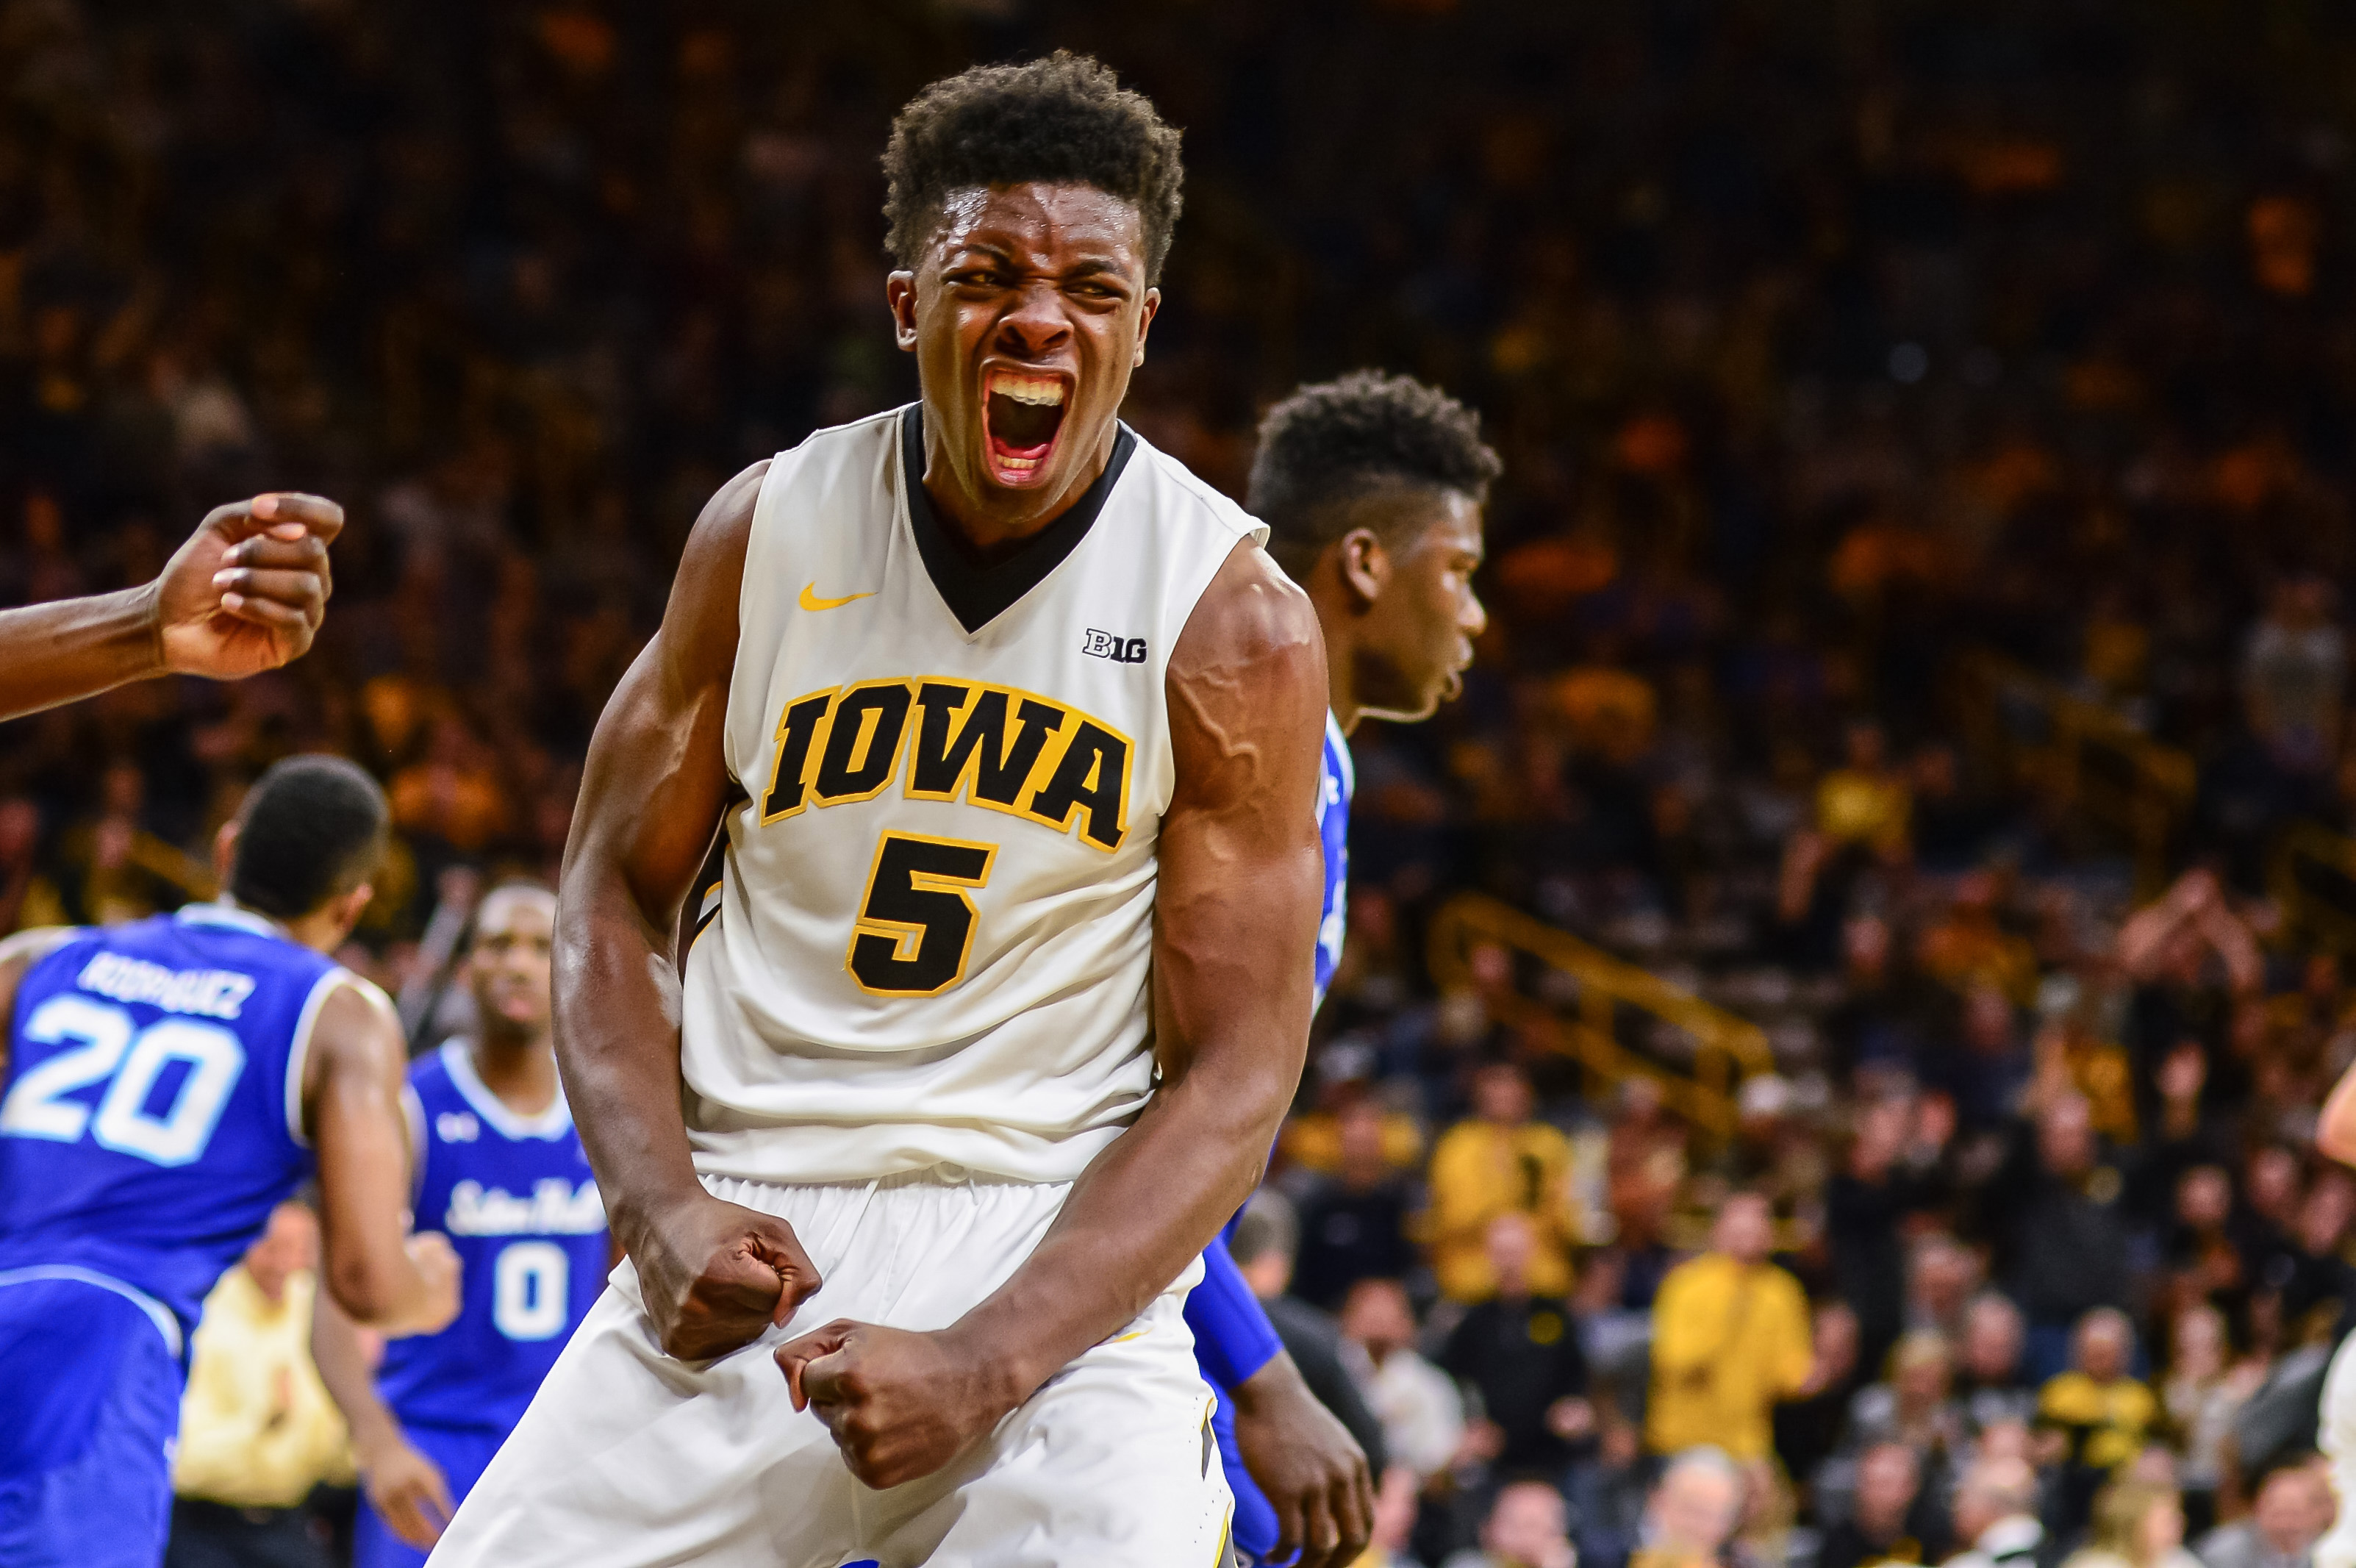 iowa basketball